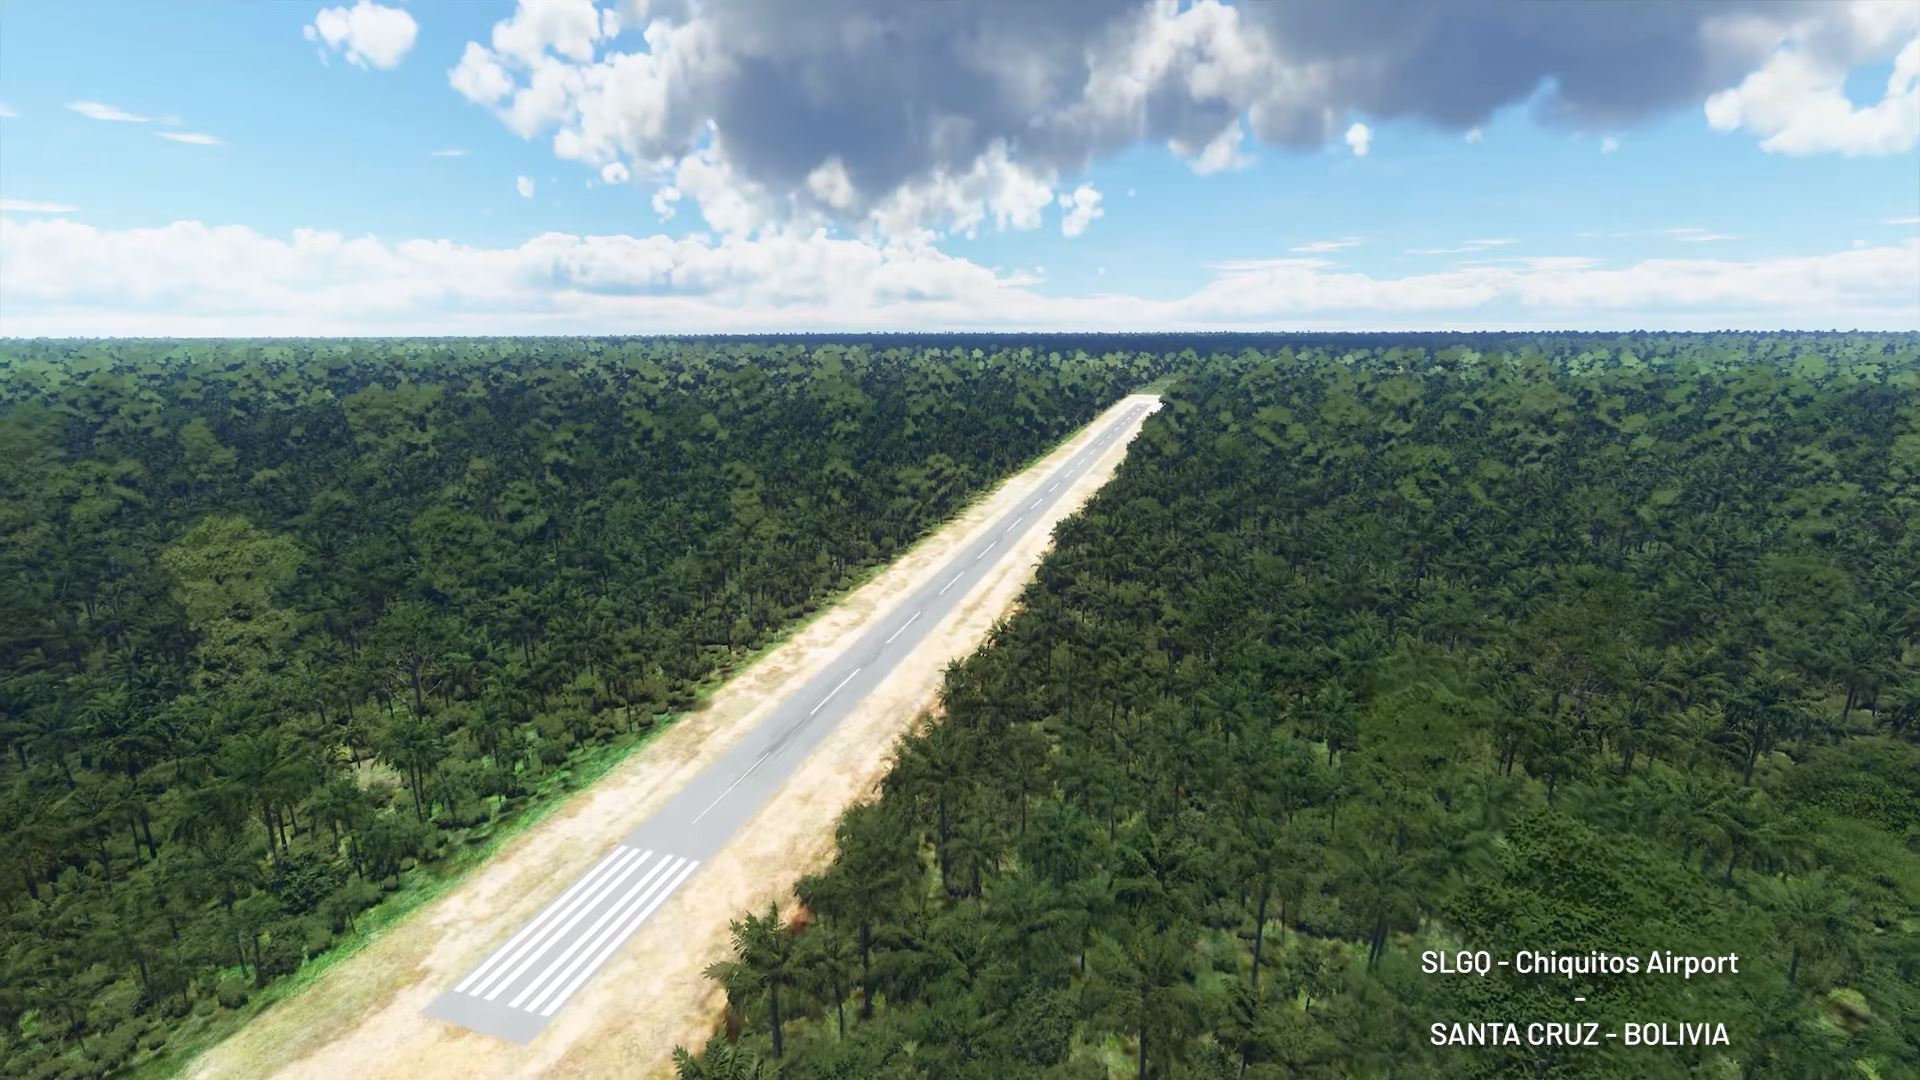 Microsoft Flight Simulator will feature